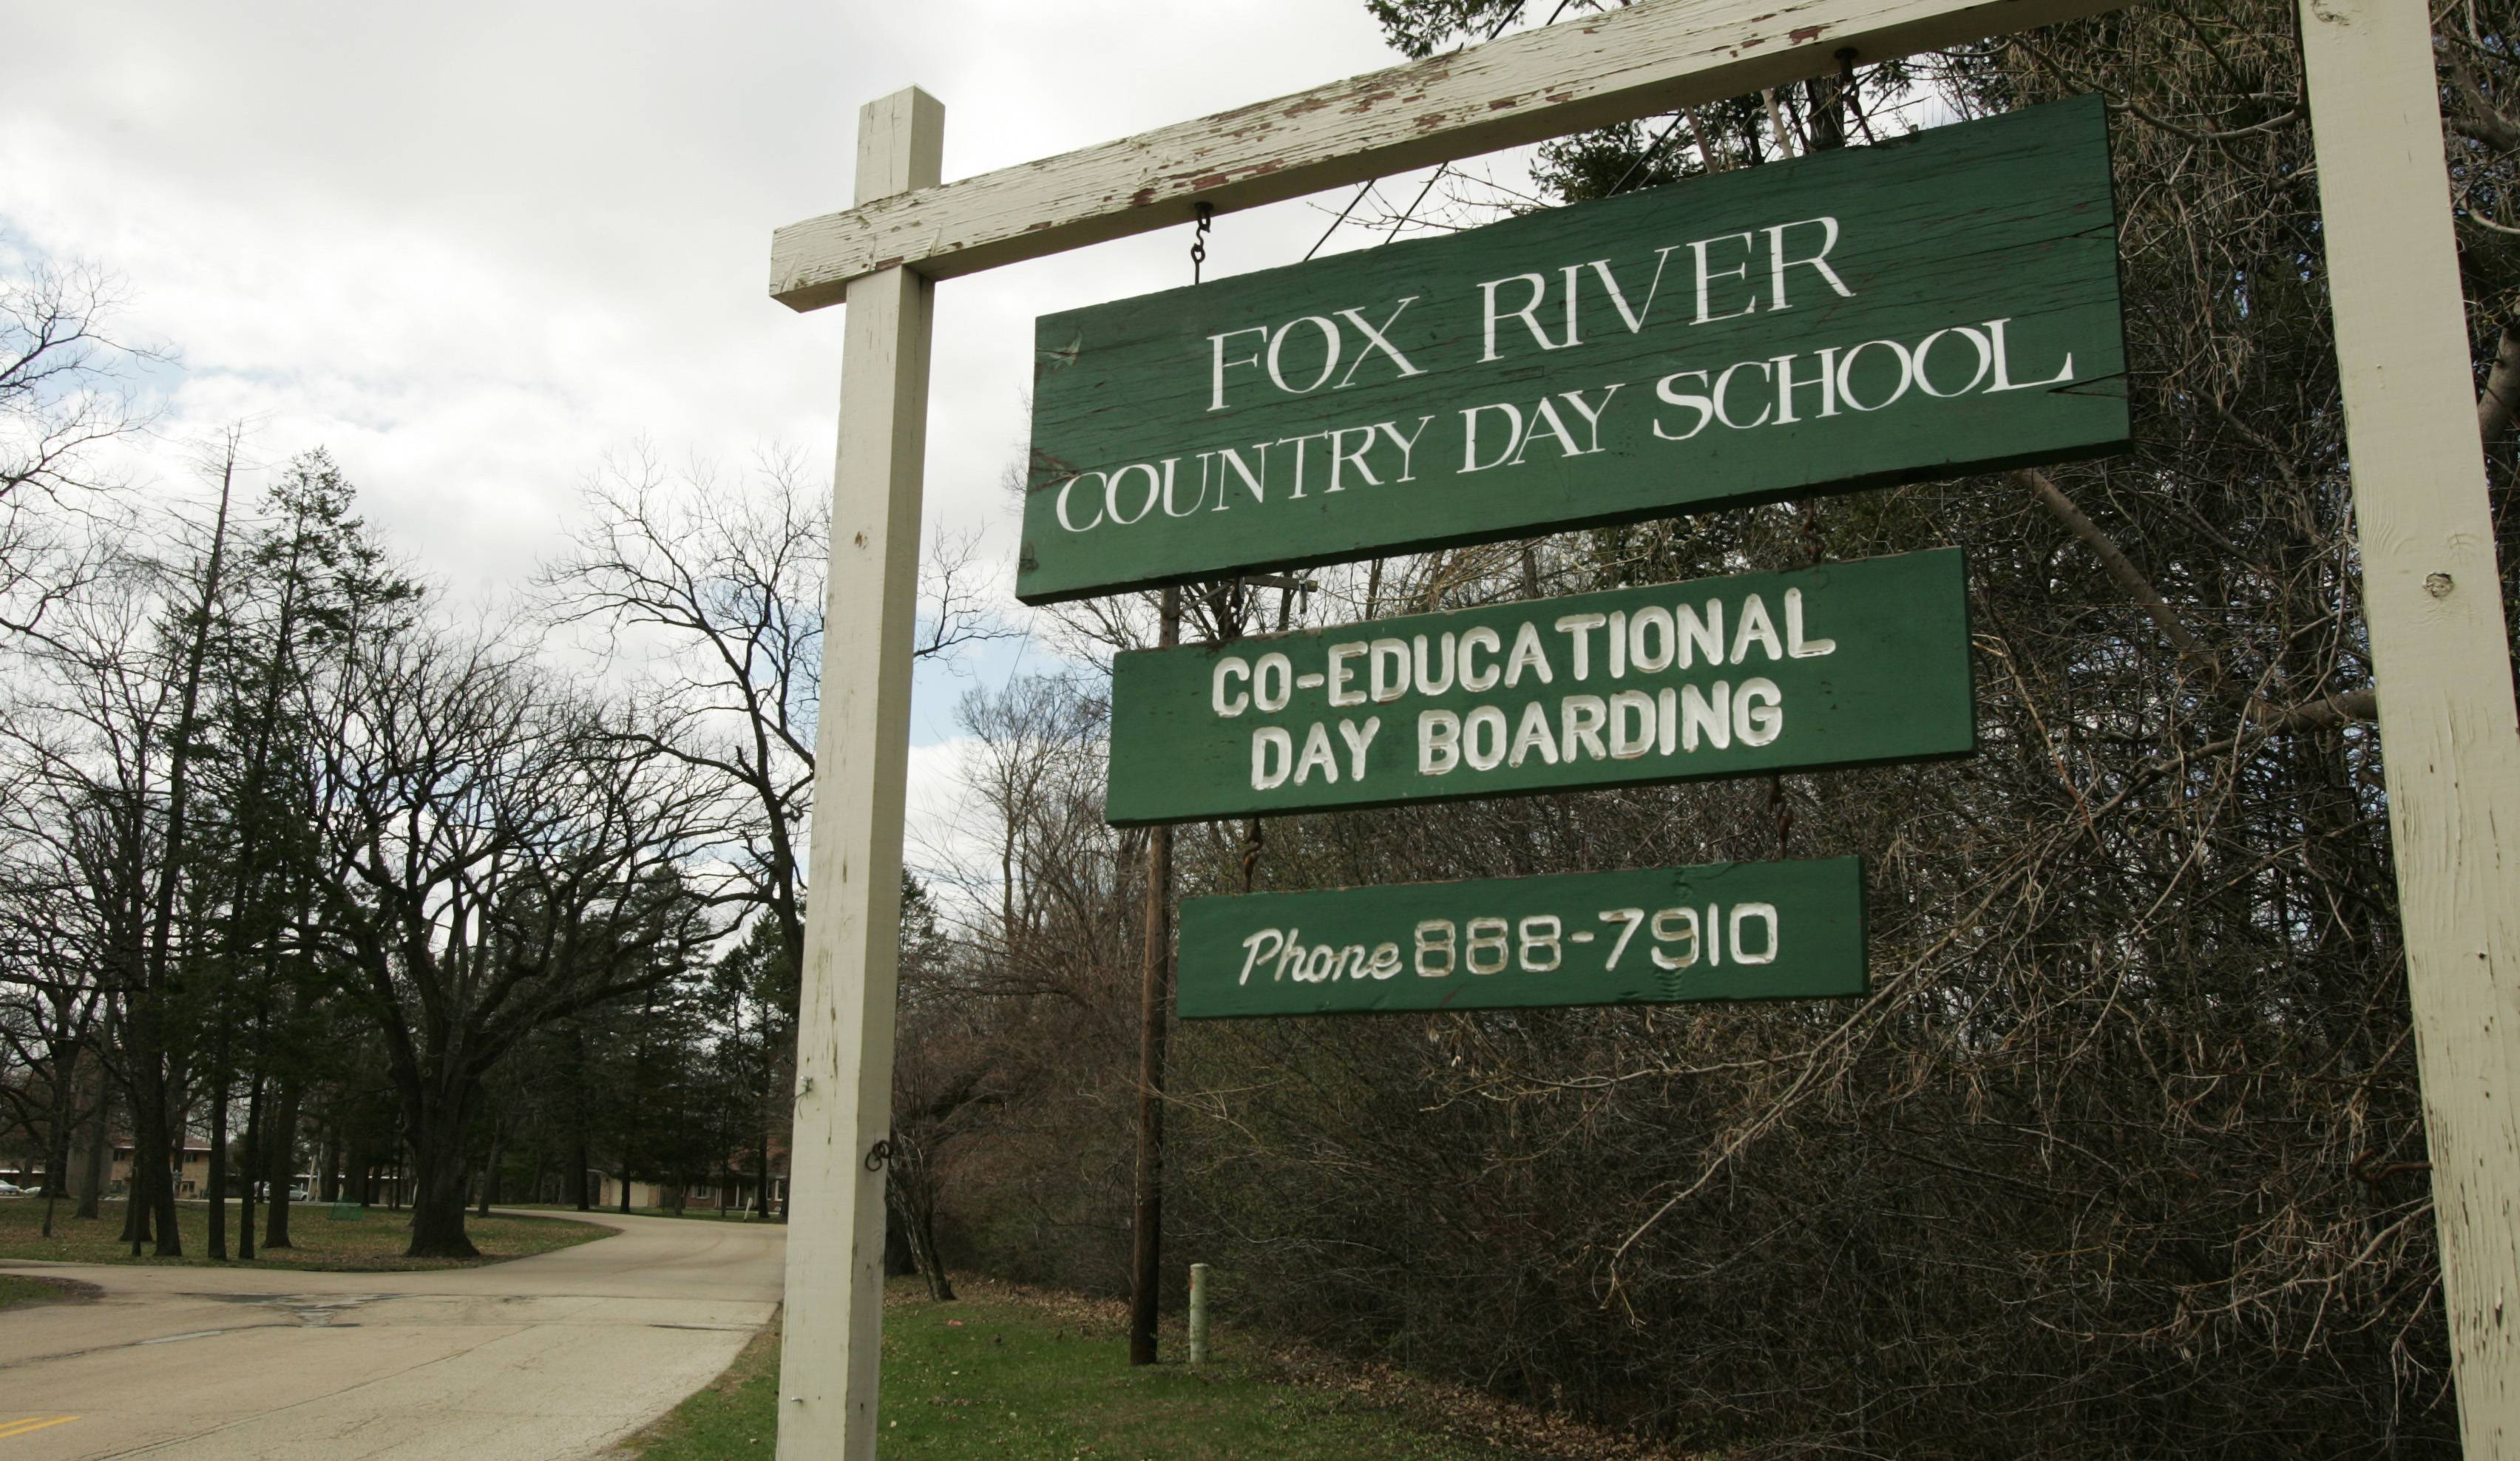 The Fox River Country Day School property in Elgin.